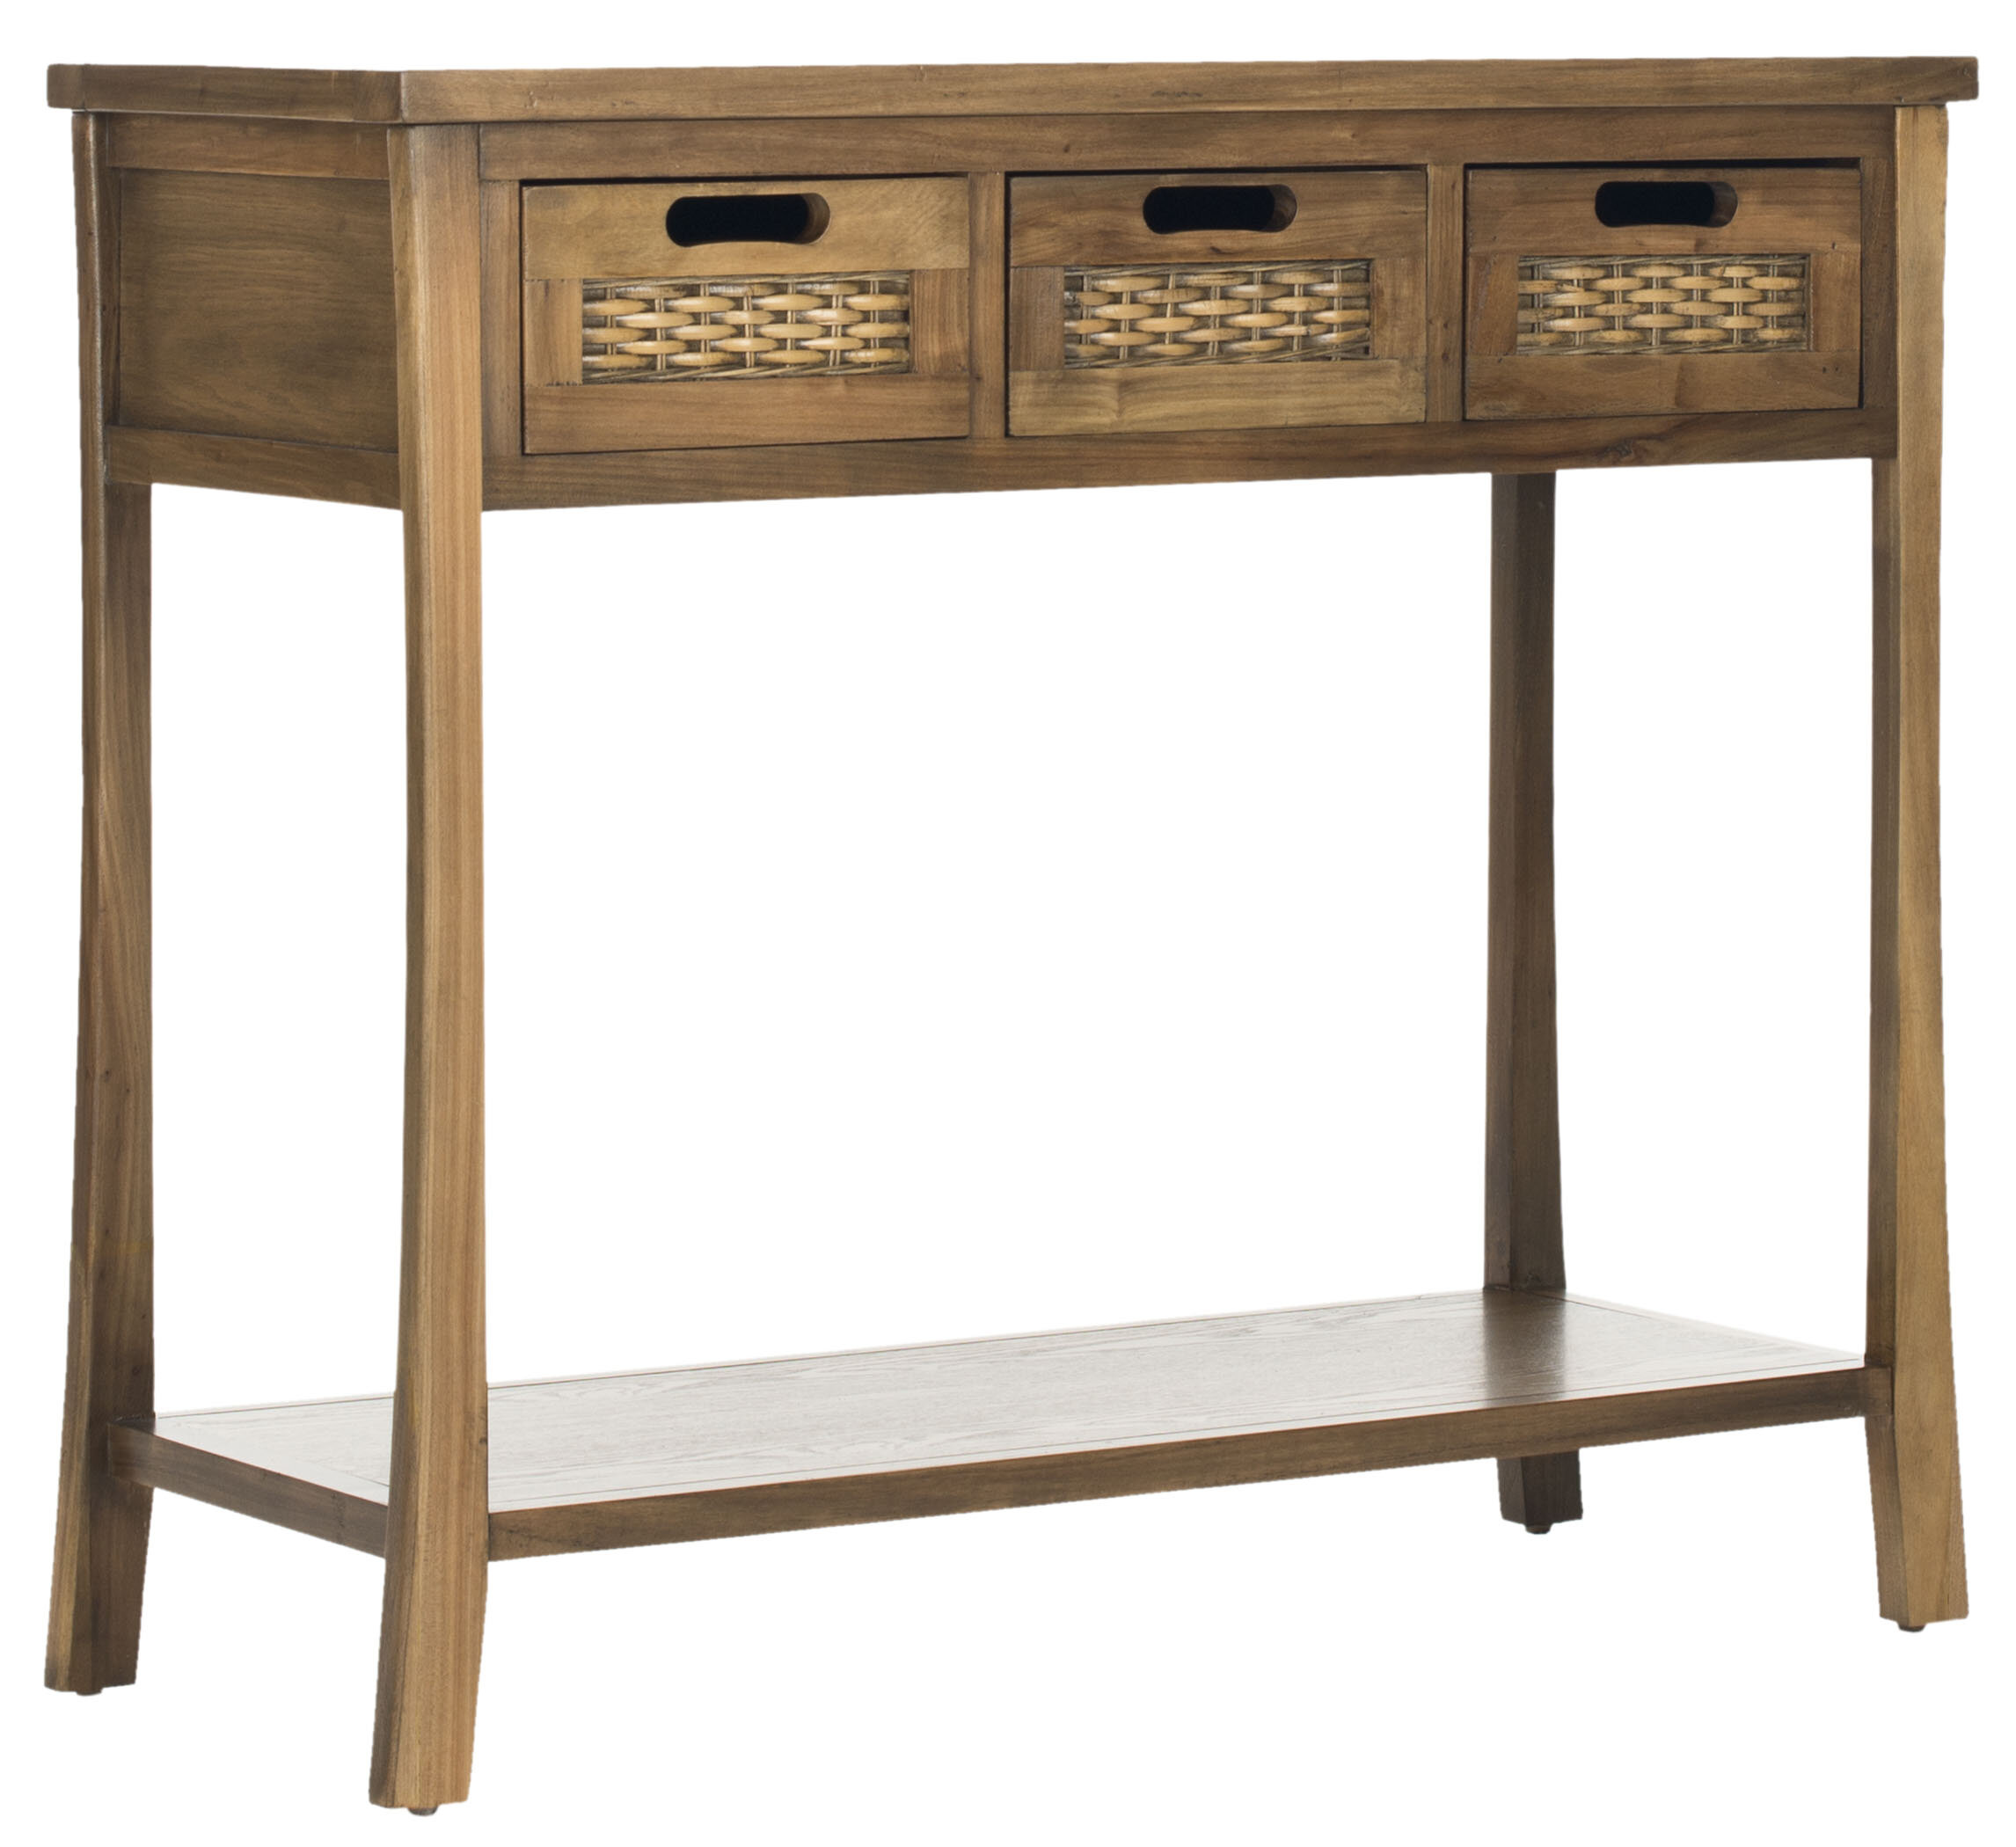 Brilliant Becket 3 Drawer Console Table Interior Design Ideas Oxytryabchikinfo